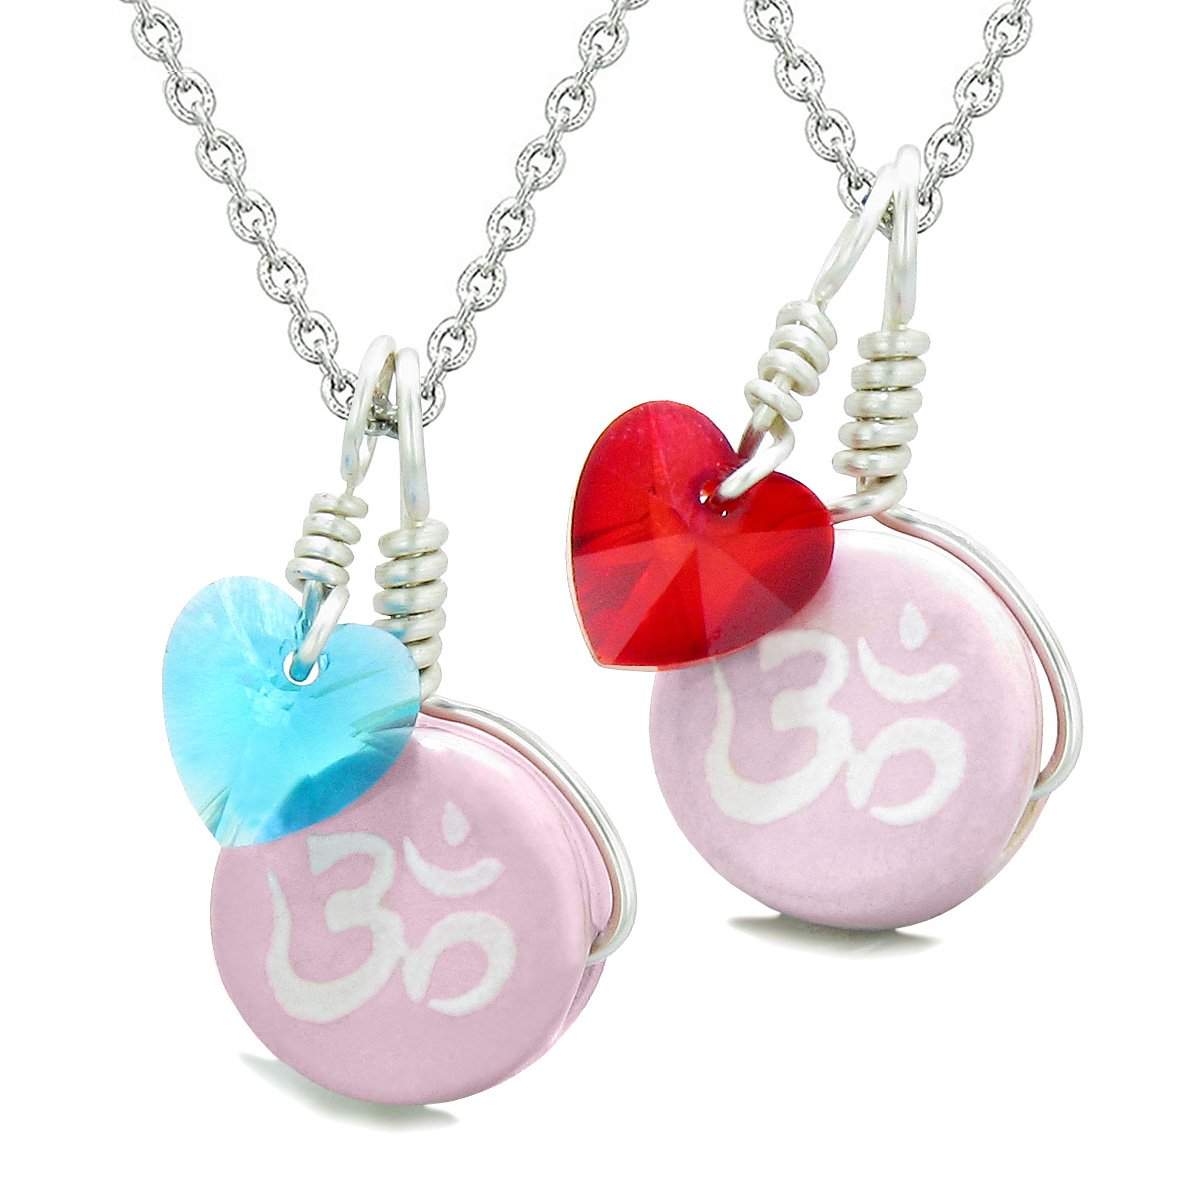 Love Couples or BFF Set Cute Ceramic Tibetan Pink OM Charms Blue Red Hearts Amulet Pendant Necklaces